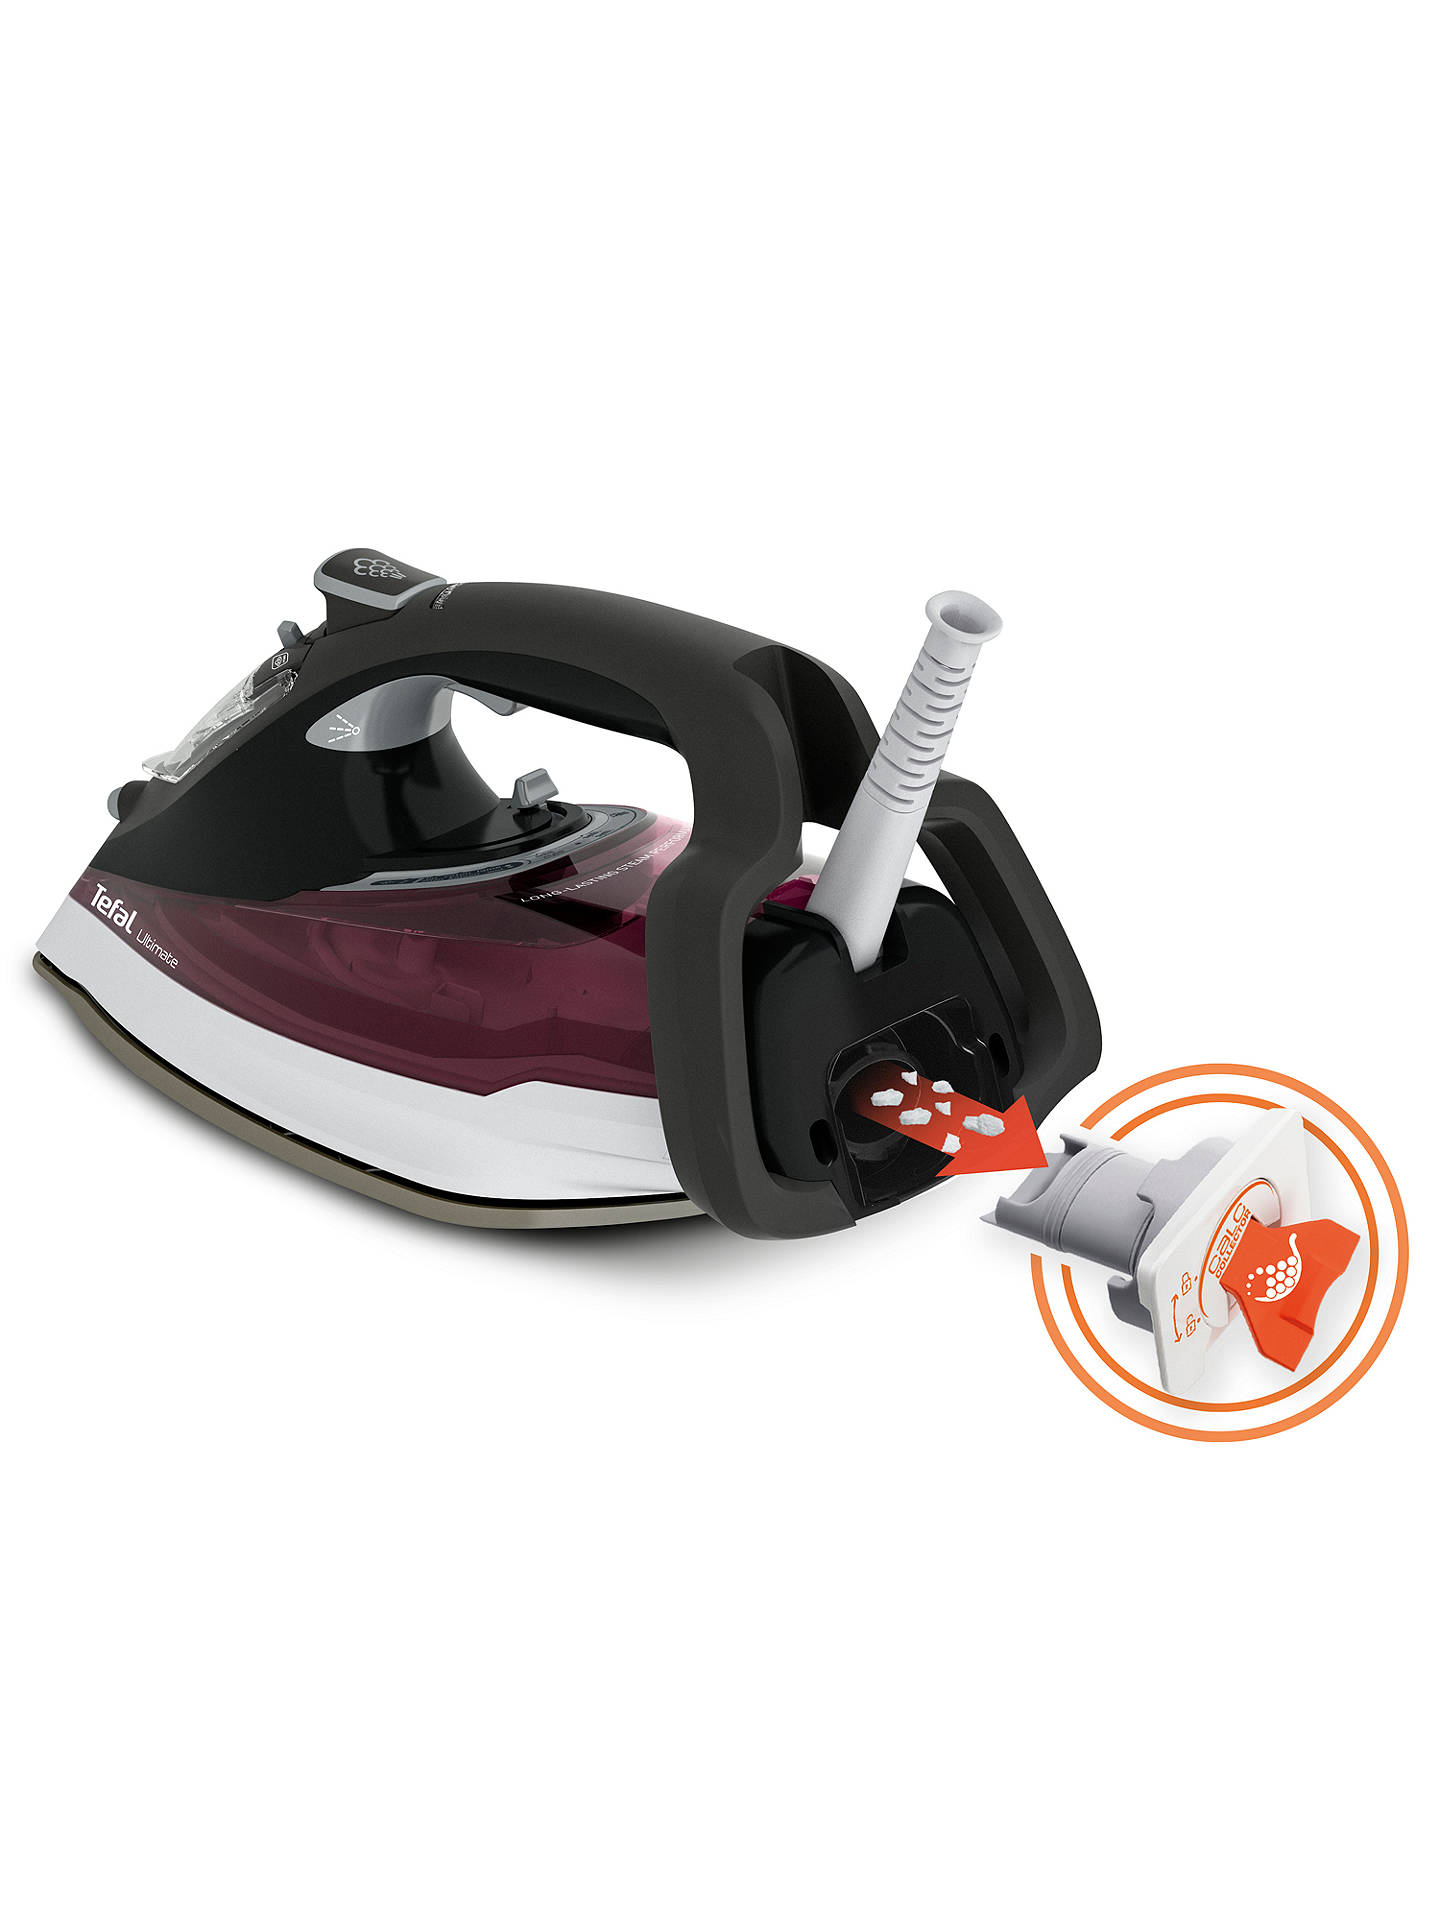 BuyTefal FV9788 Ultimate Anti-Scale Steam Iron Online at johnlewis.com